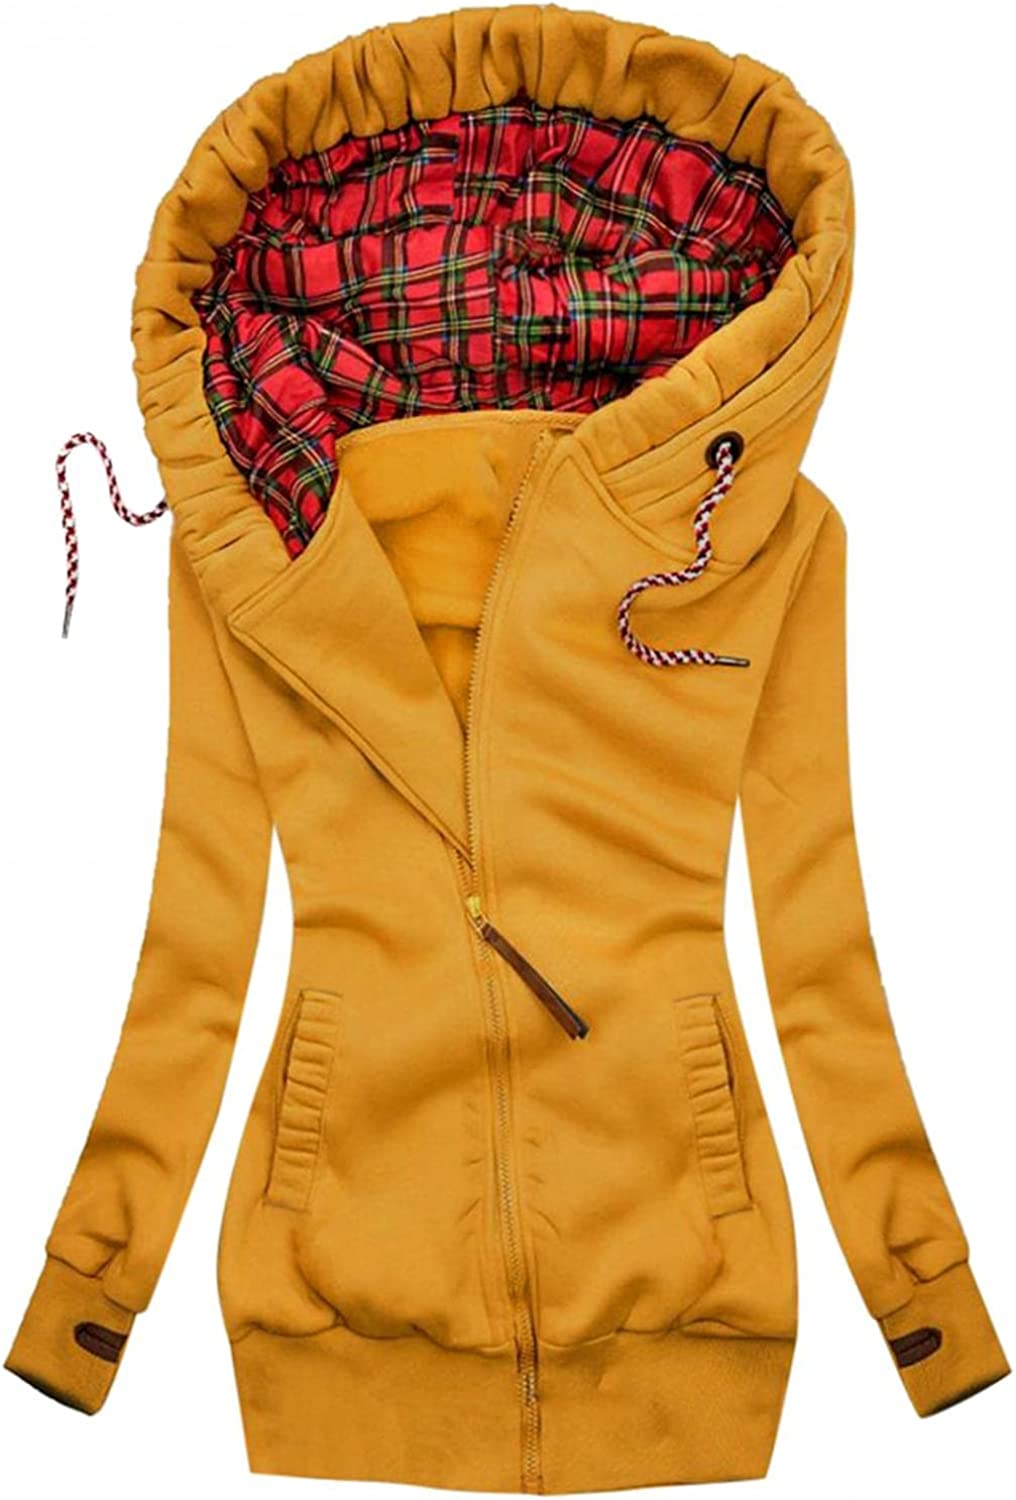 Jackets For Womens Lightweight Zip Up Casual Bomber Jacket Coat Stand Collar Short Outwear With Pocket